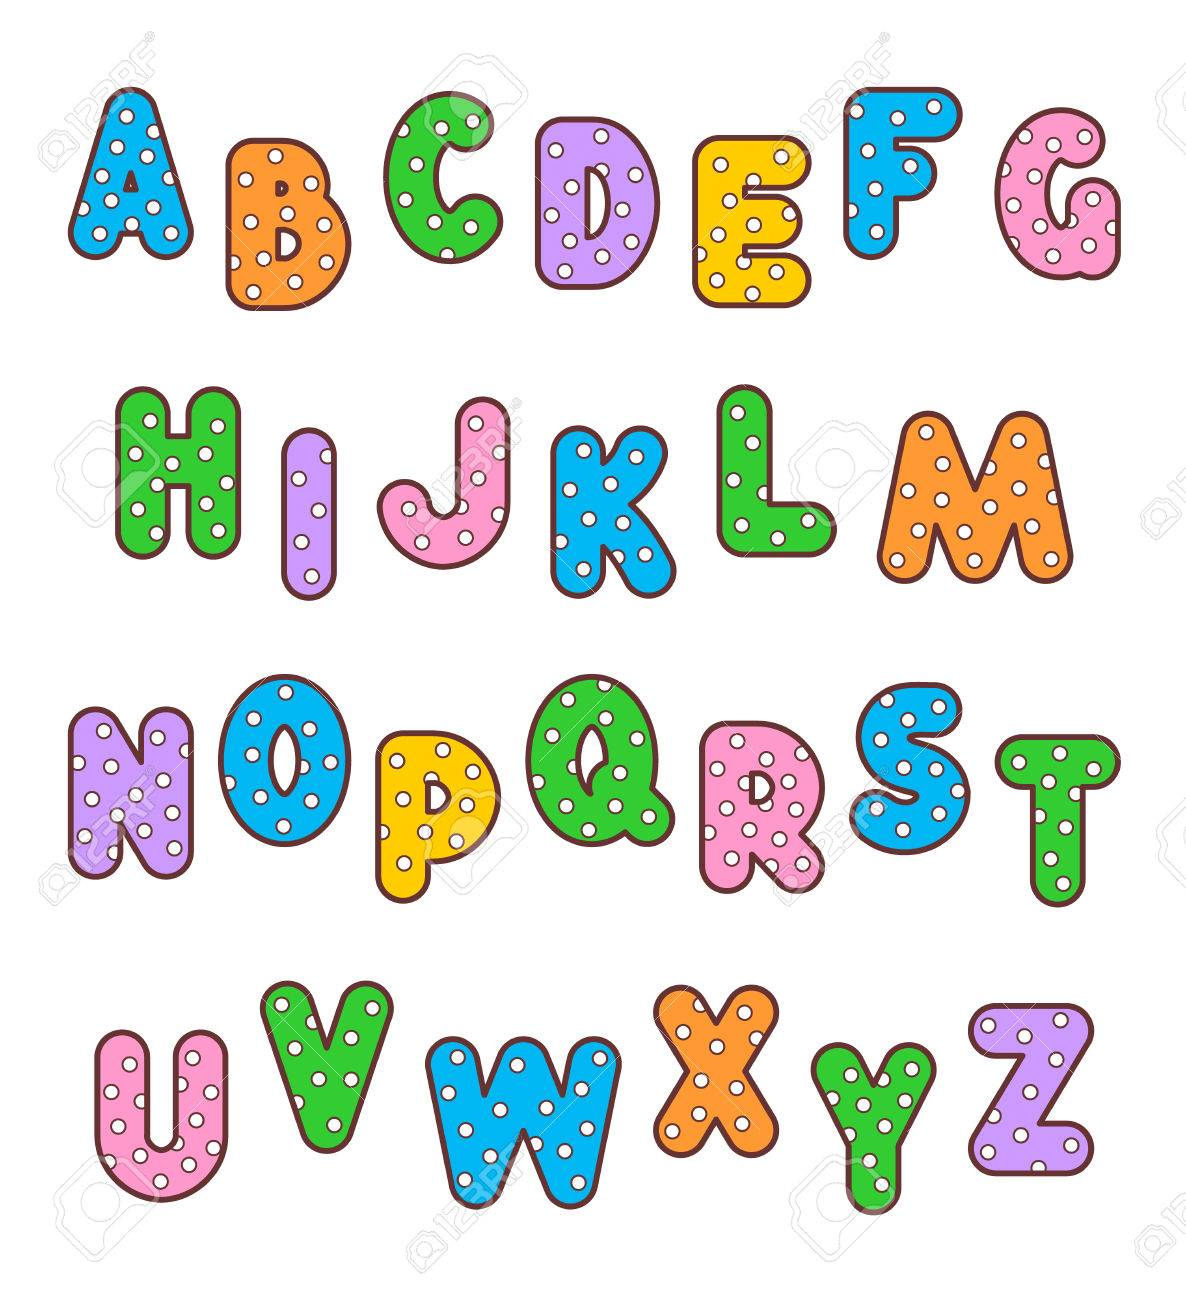 English alphabet set of polka-dot patterned and outlined bold